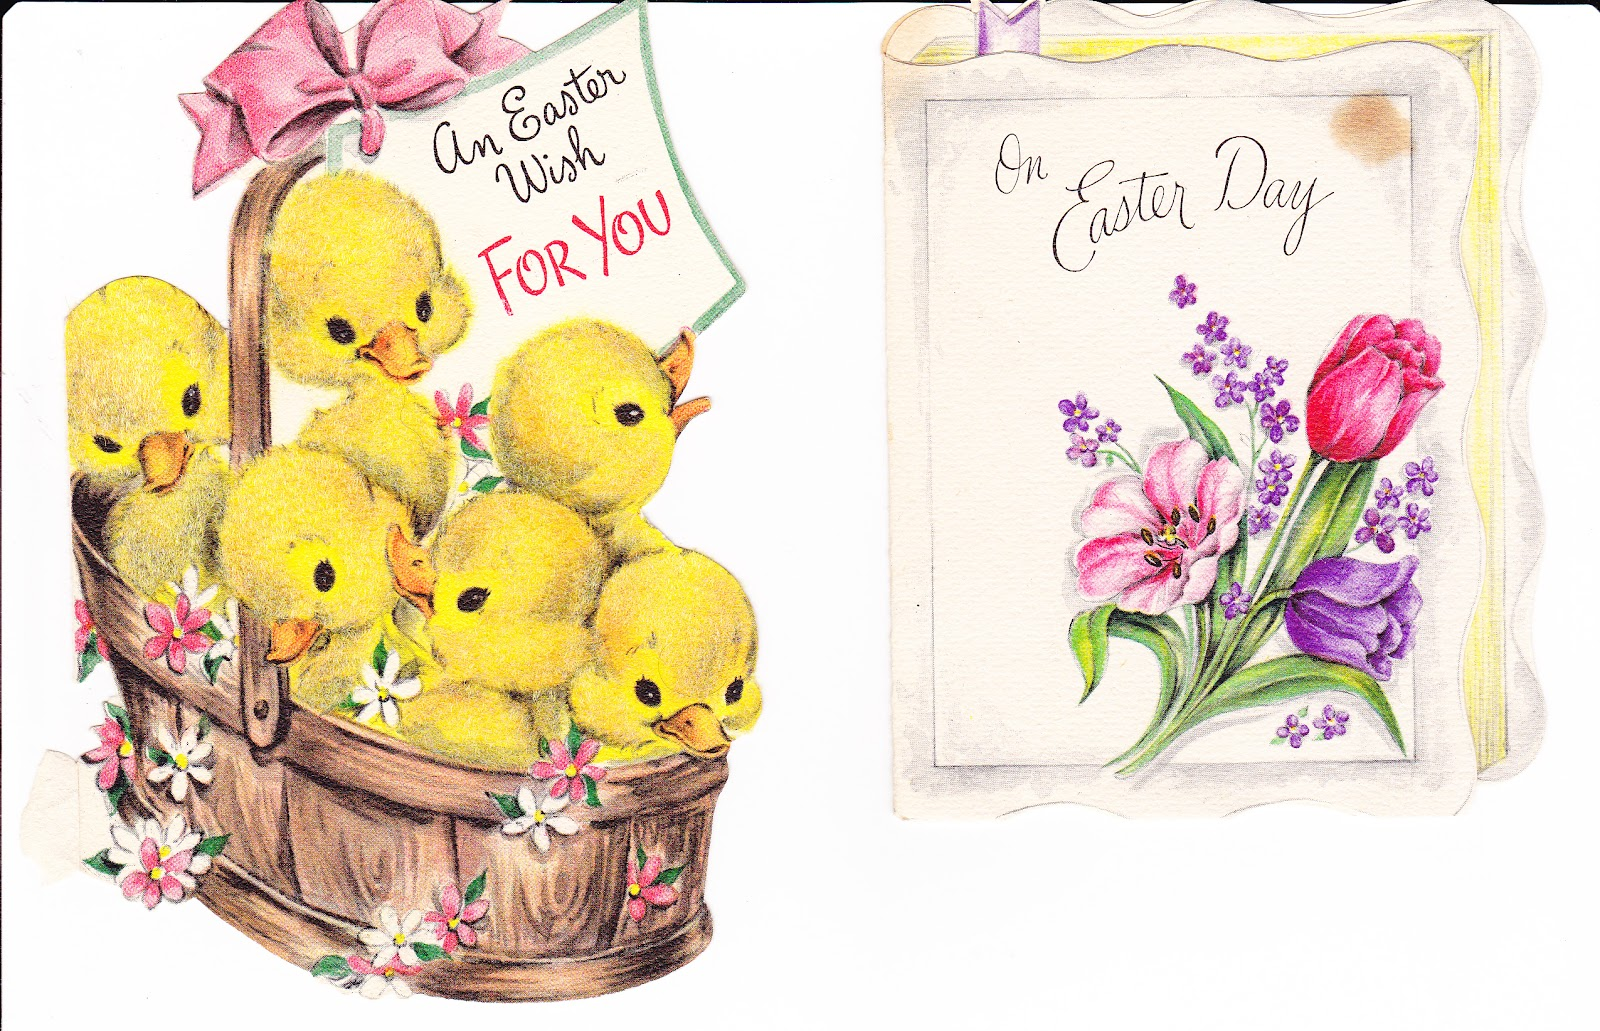 Two cute cards a basket of chicks and a card shaped like a bible